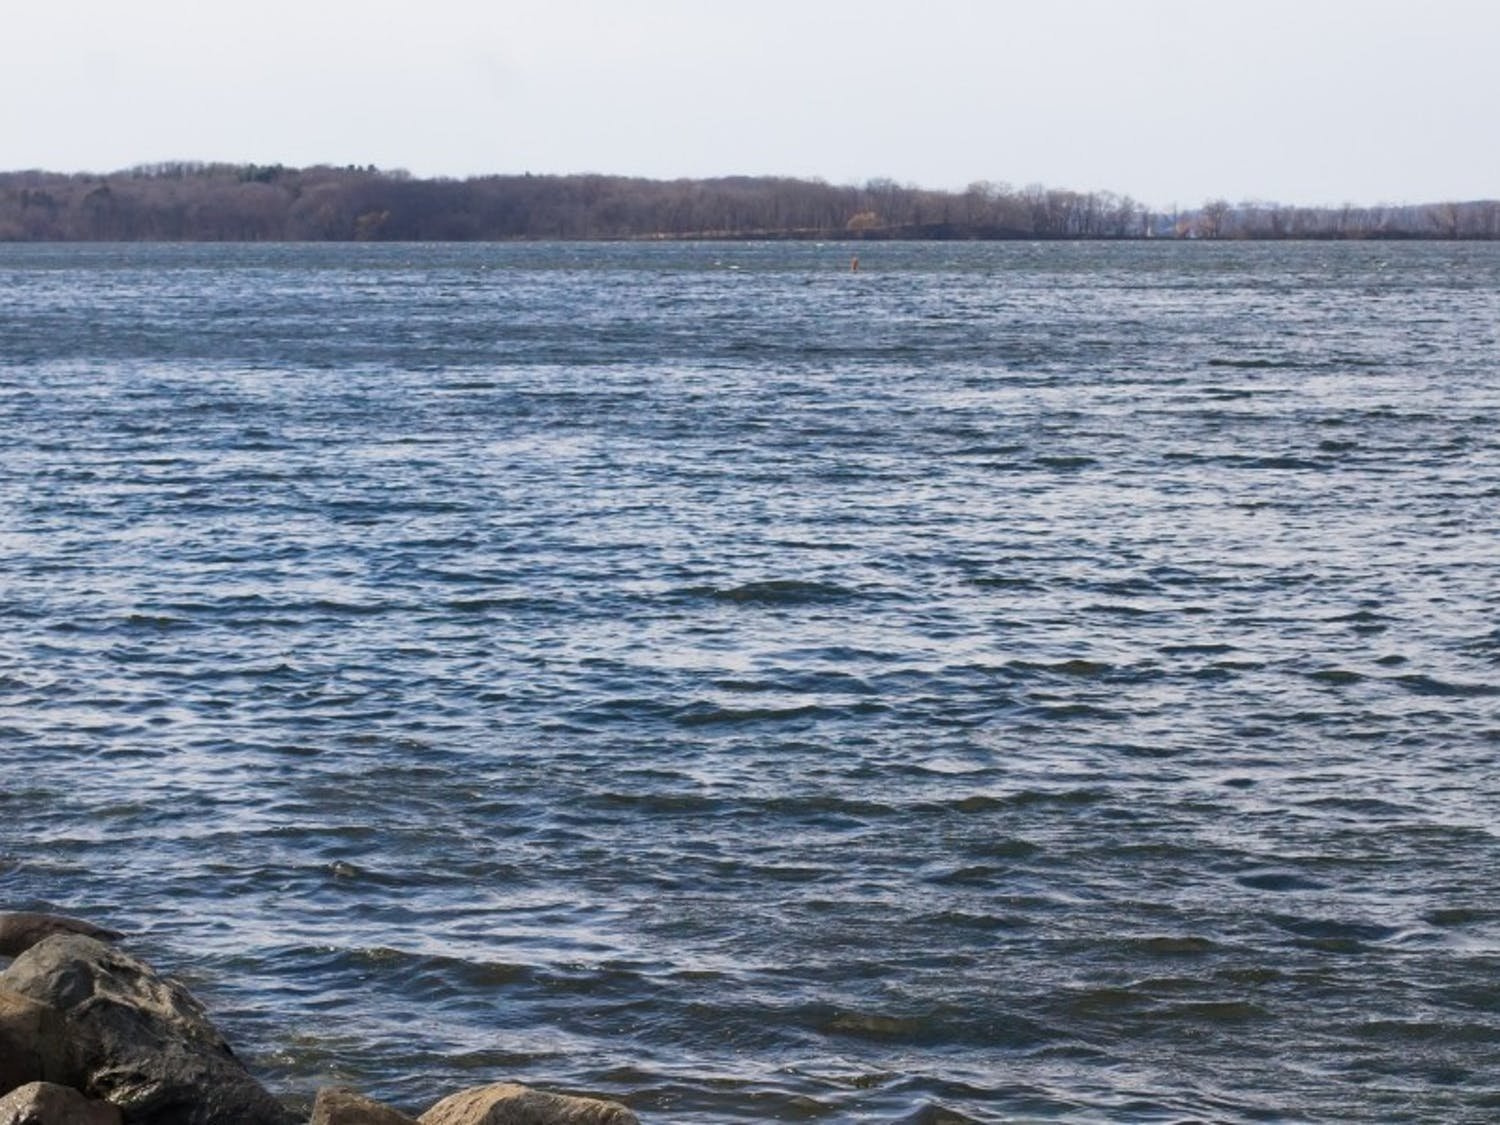 A body was found Thursday in Lake Mendota, on the west shore of the lake.